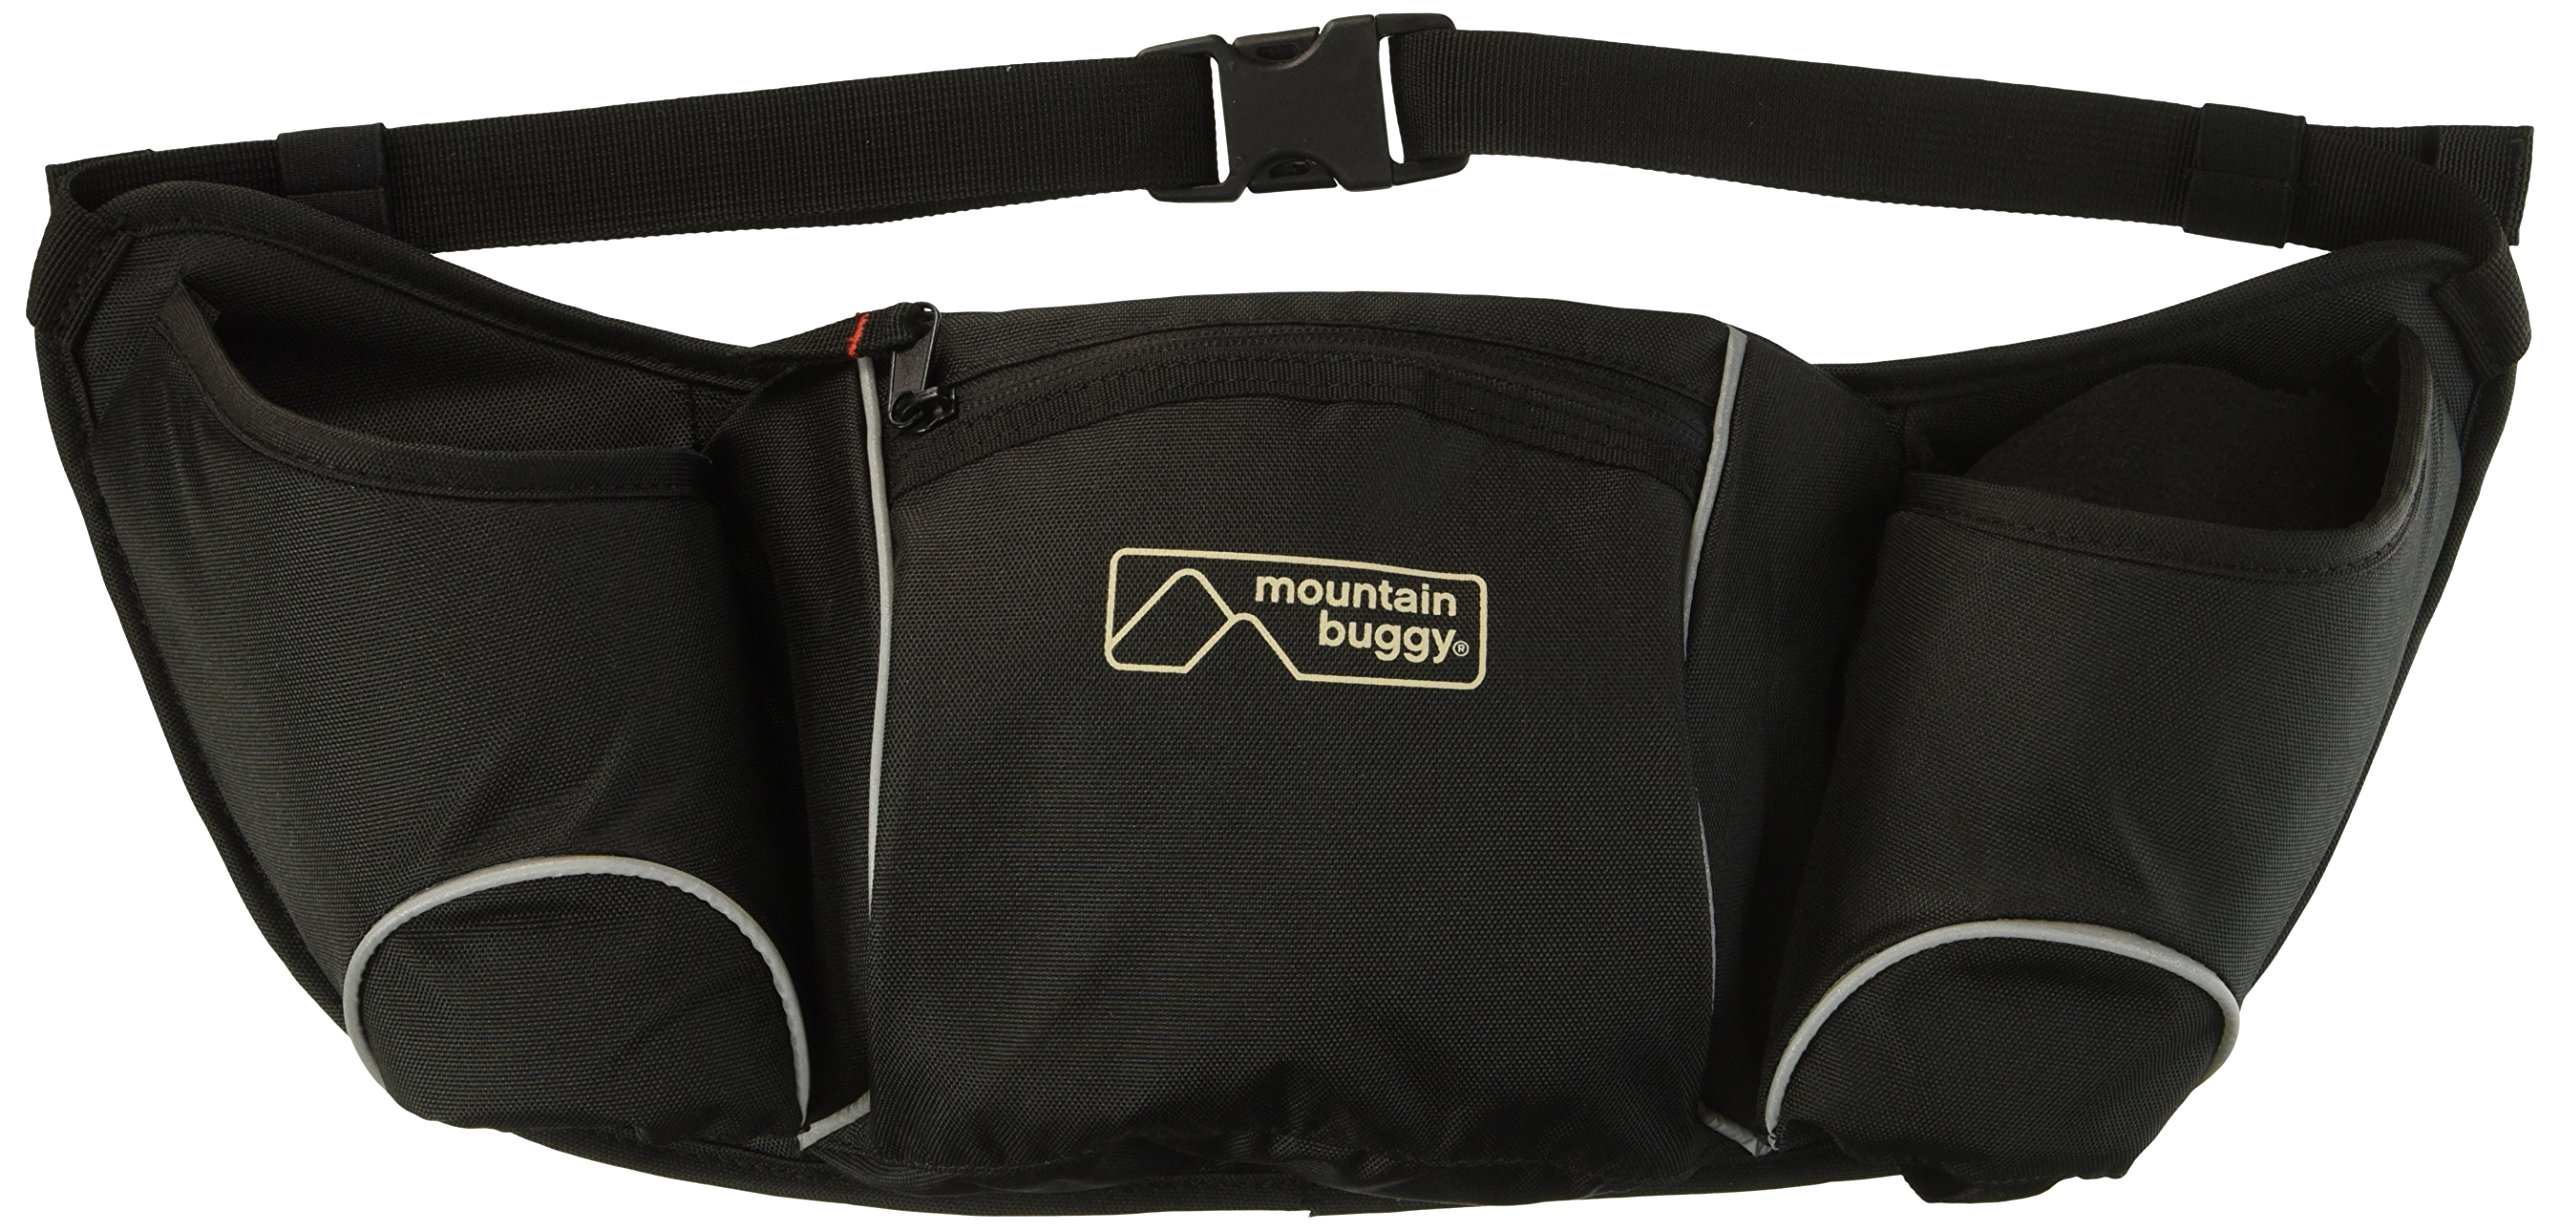 Mountain Buggy Storage Pouch and Hang Bag, Black